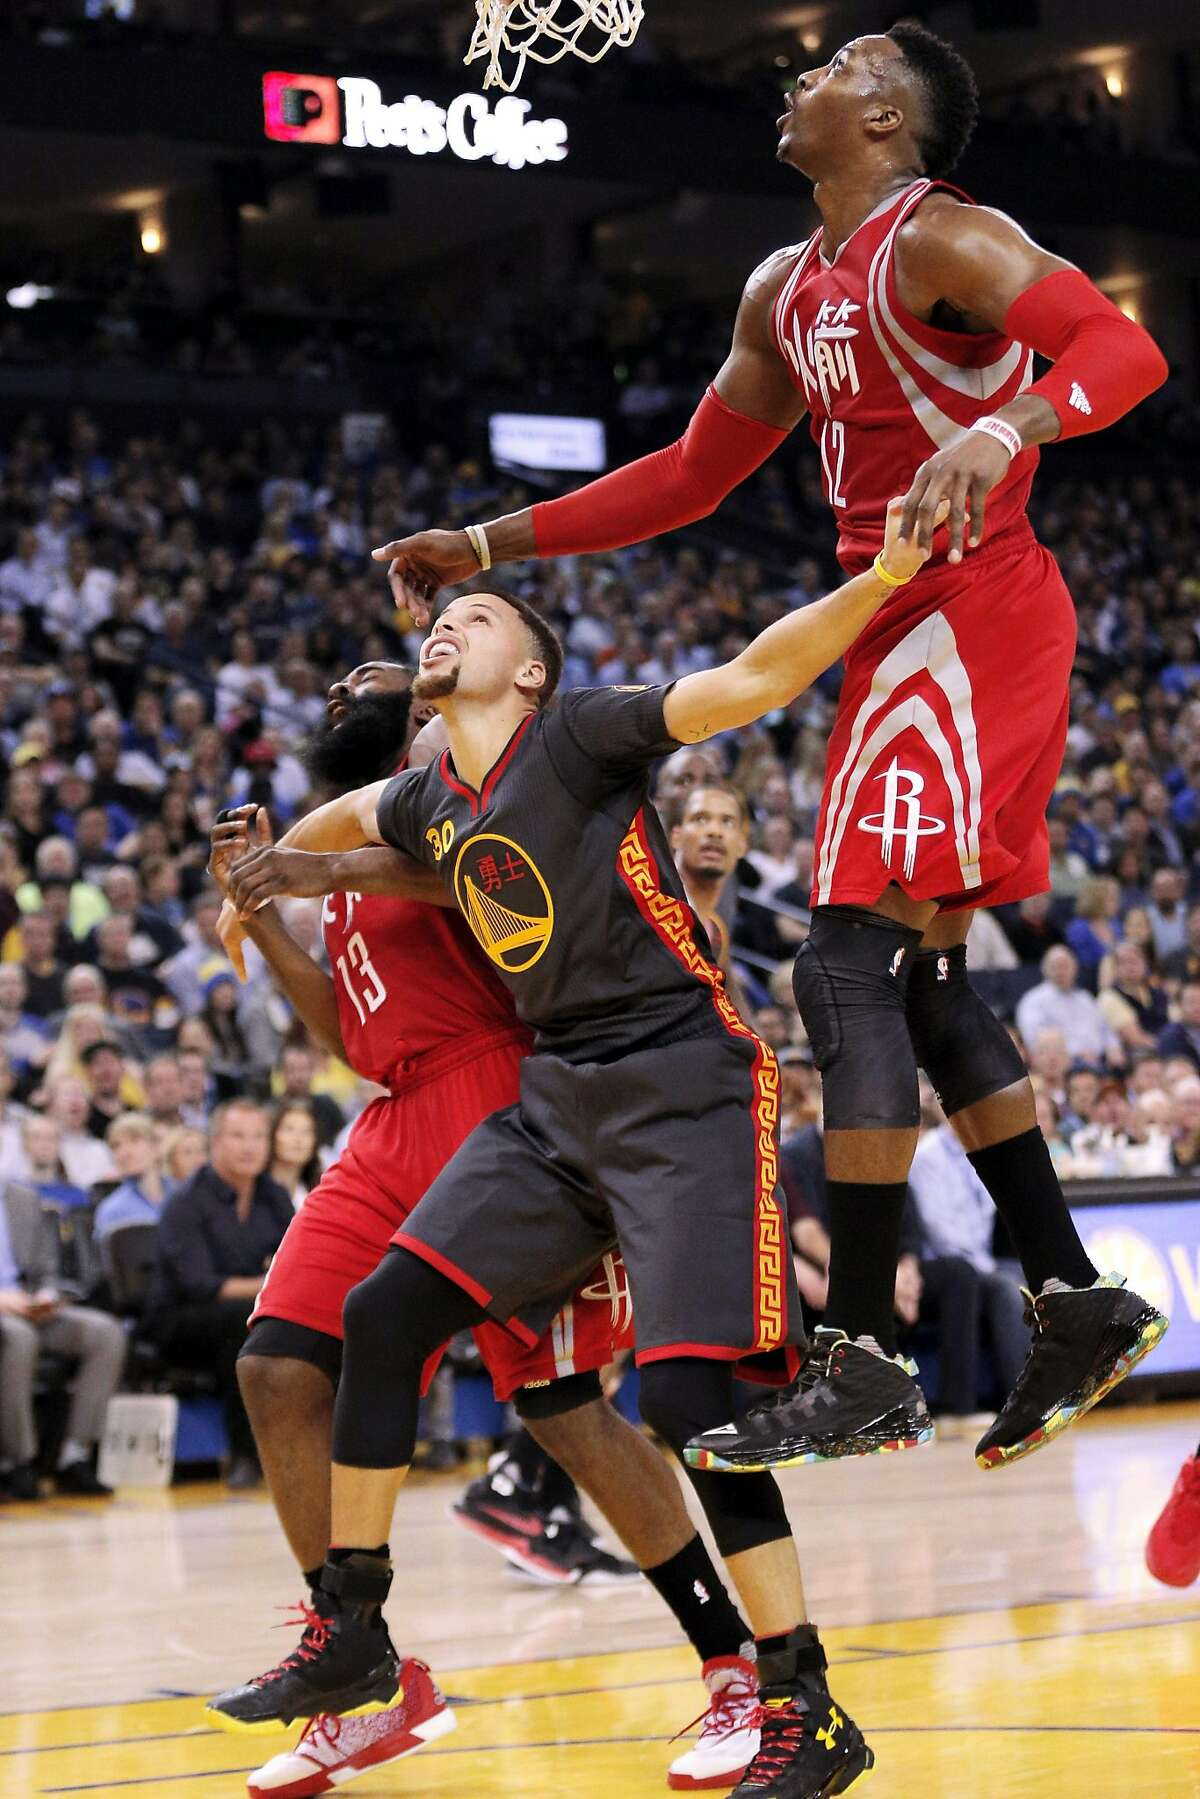 Stephen Curry (30) tries to box out Dwight Howard (12) and James Harden (13) from a rebound during the first half of the game between the Golden State Warriors and the Houston Rockets at Oracle Arena in Oakland, Calif., on Tuesday, February 9, 2016.